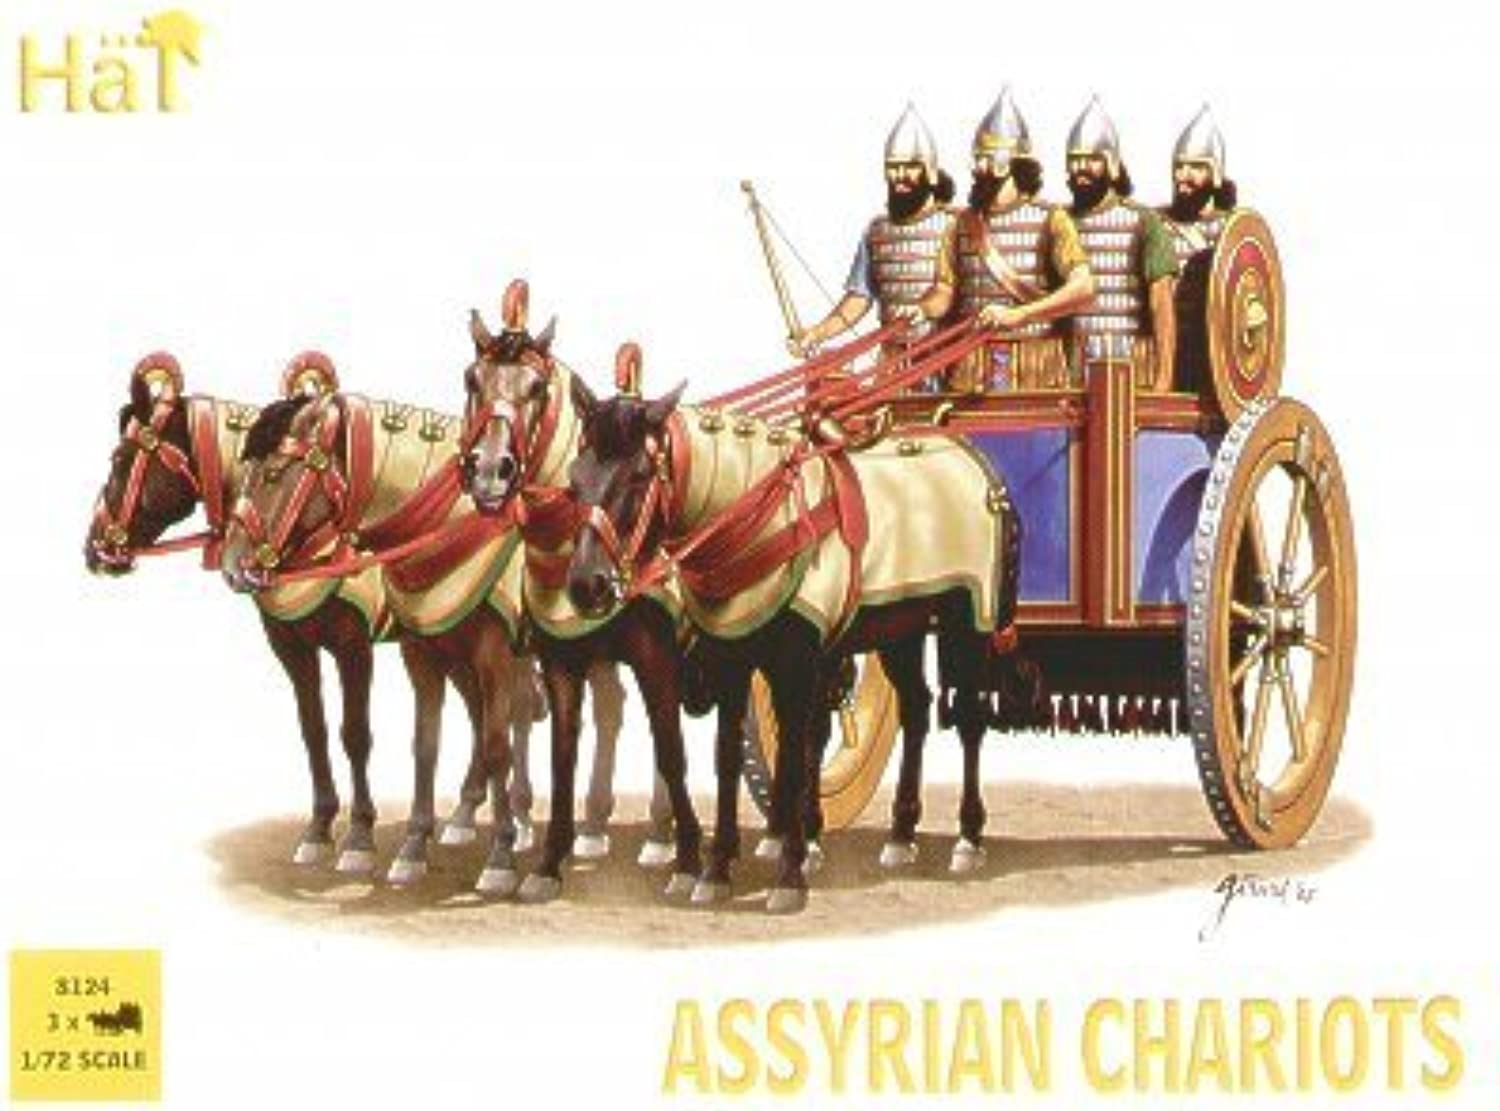 Assyrian Chariots (3 Sets) (4ea Soldiers, Horses & 3 Chariots) 1 72 Hat by HaT Industrie